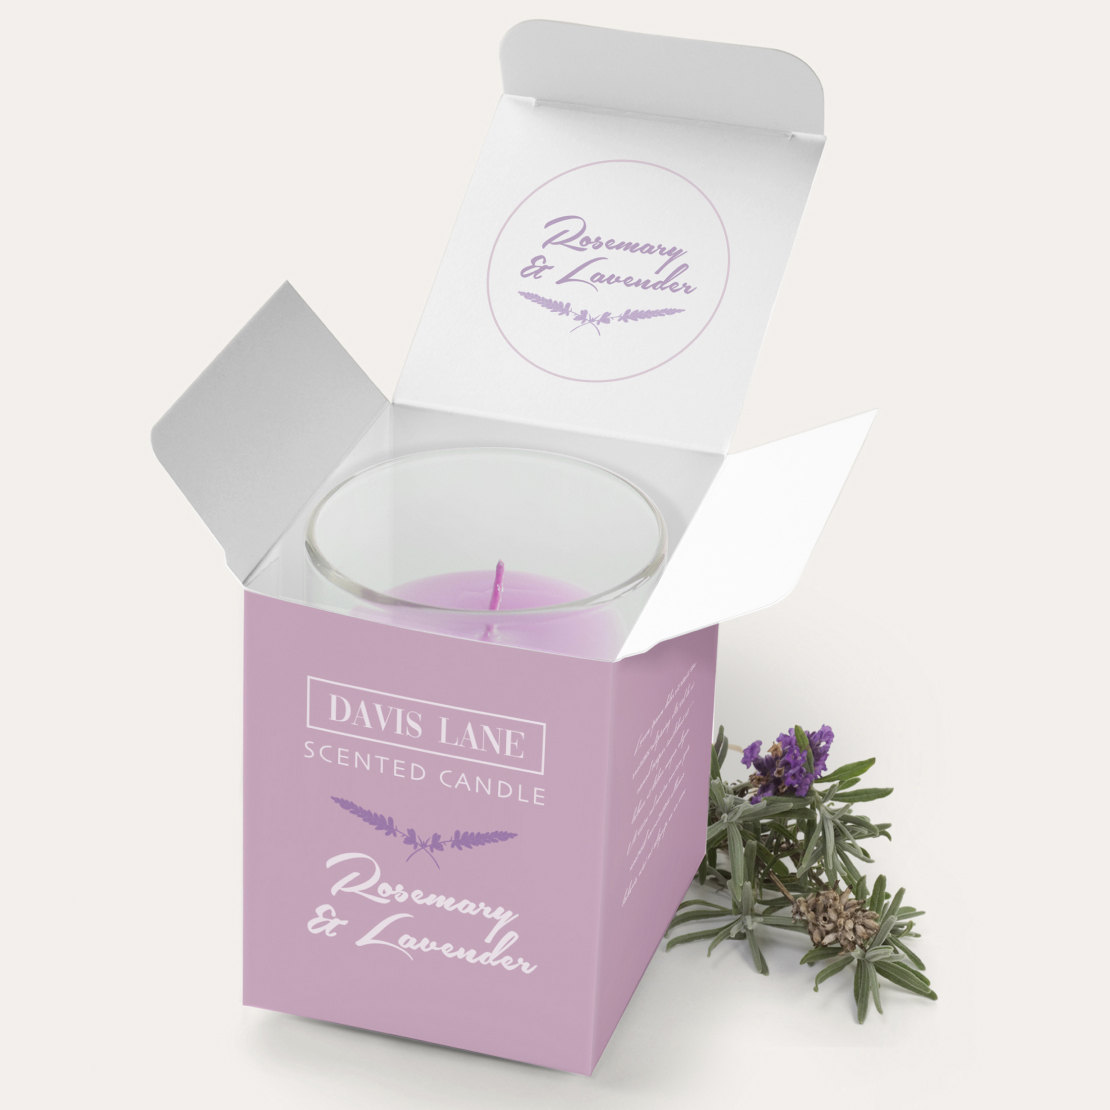 davis lane scented candle product box